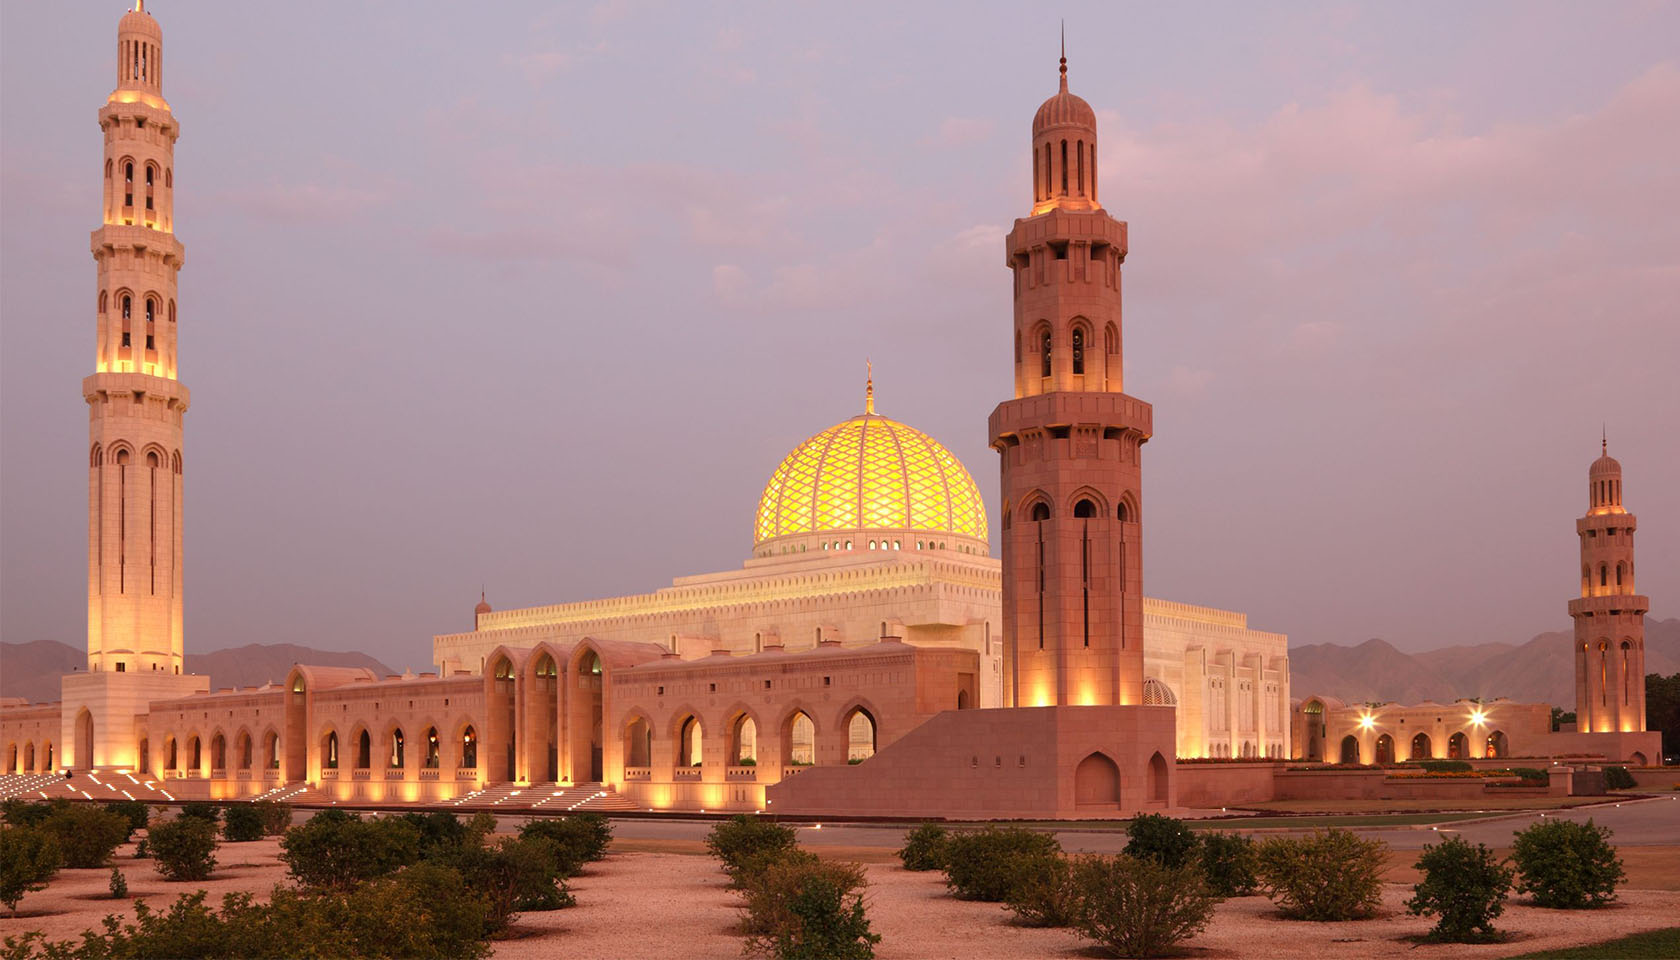 sultan-qaboos-grand-mosque-in-muscat-oman